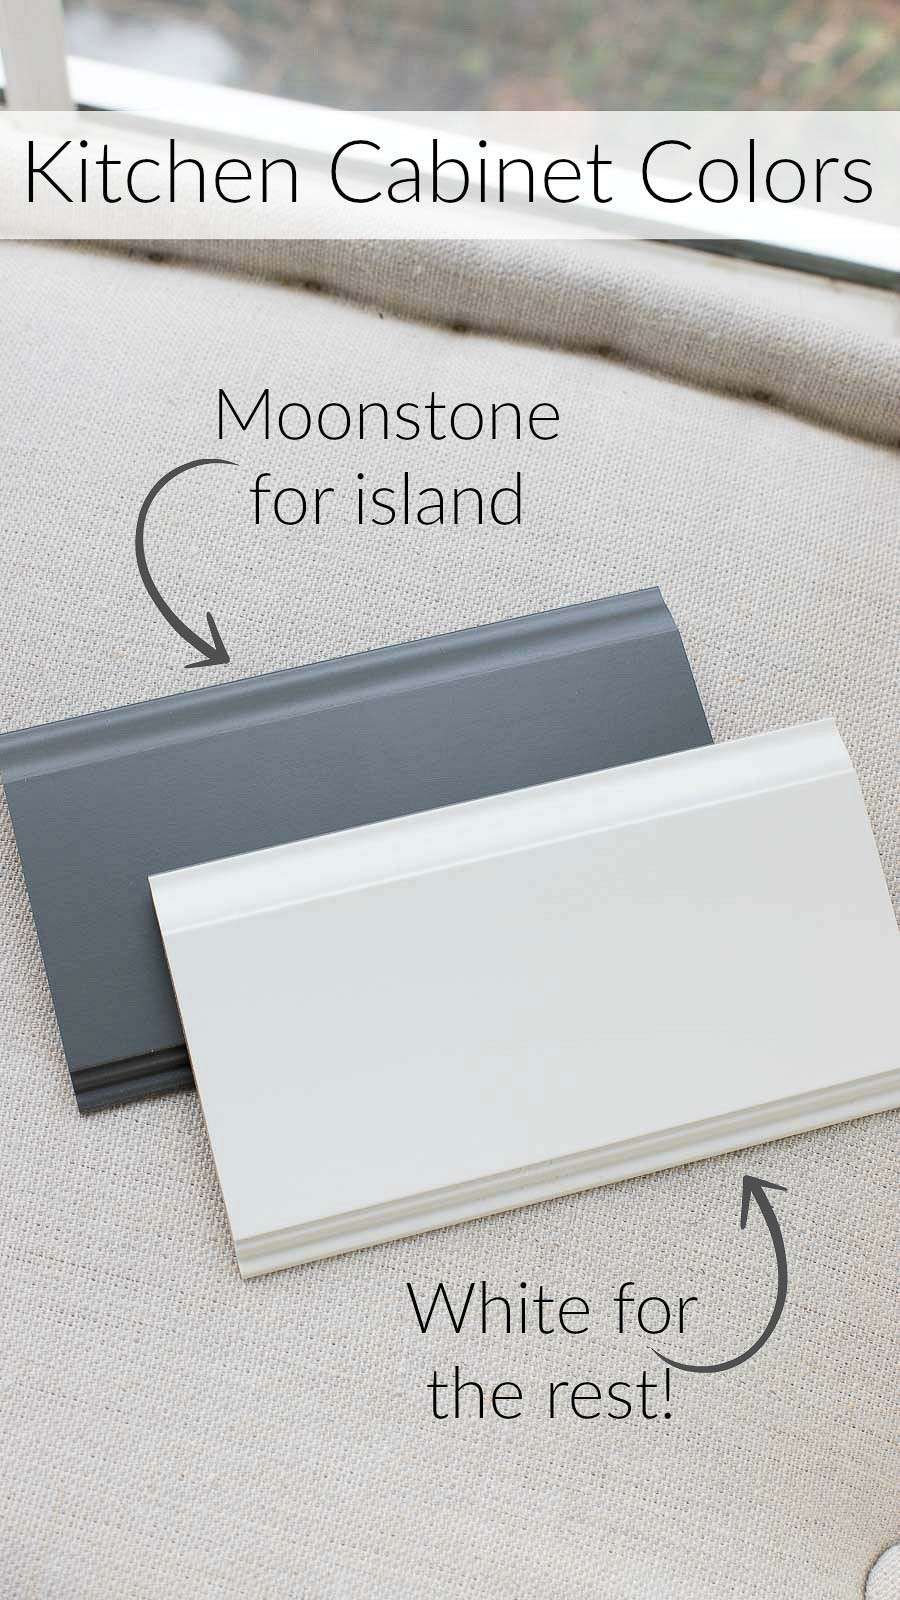 Love these kitchen cabinet paint colors!! Moonstone for island and White for the rest (Masterbrand Diamond cabinets)